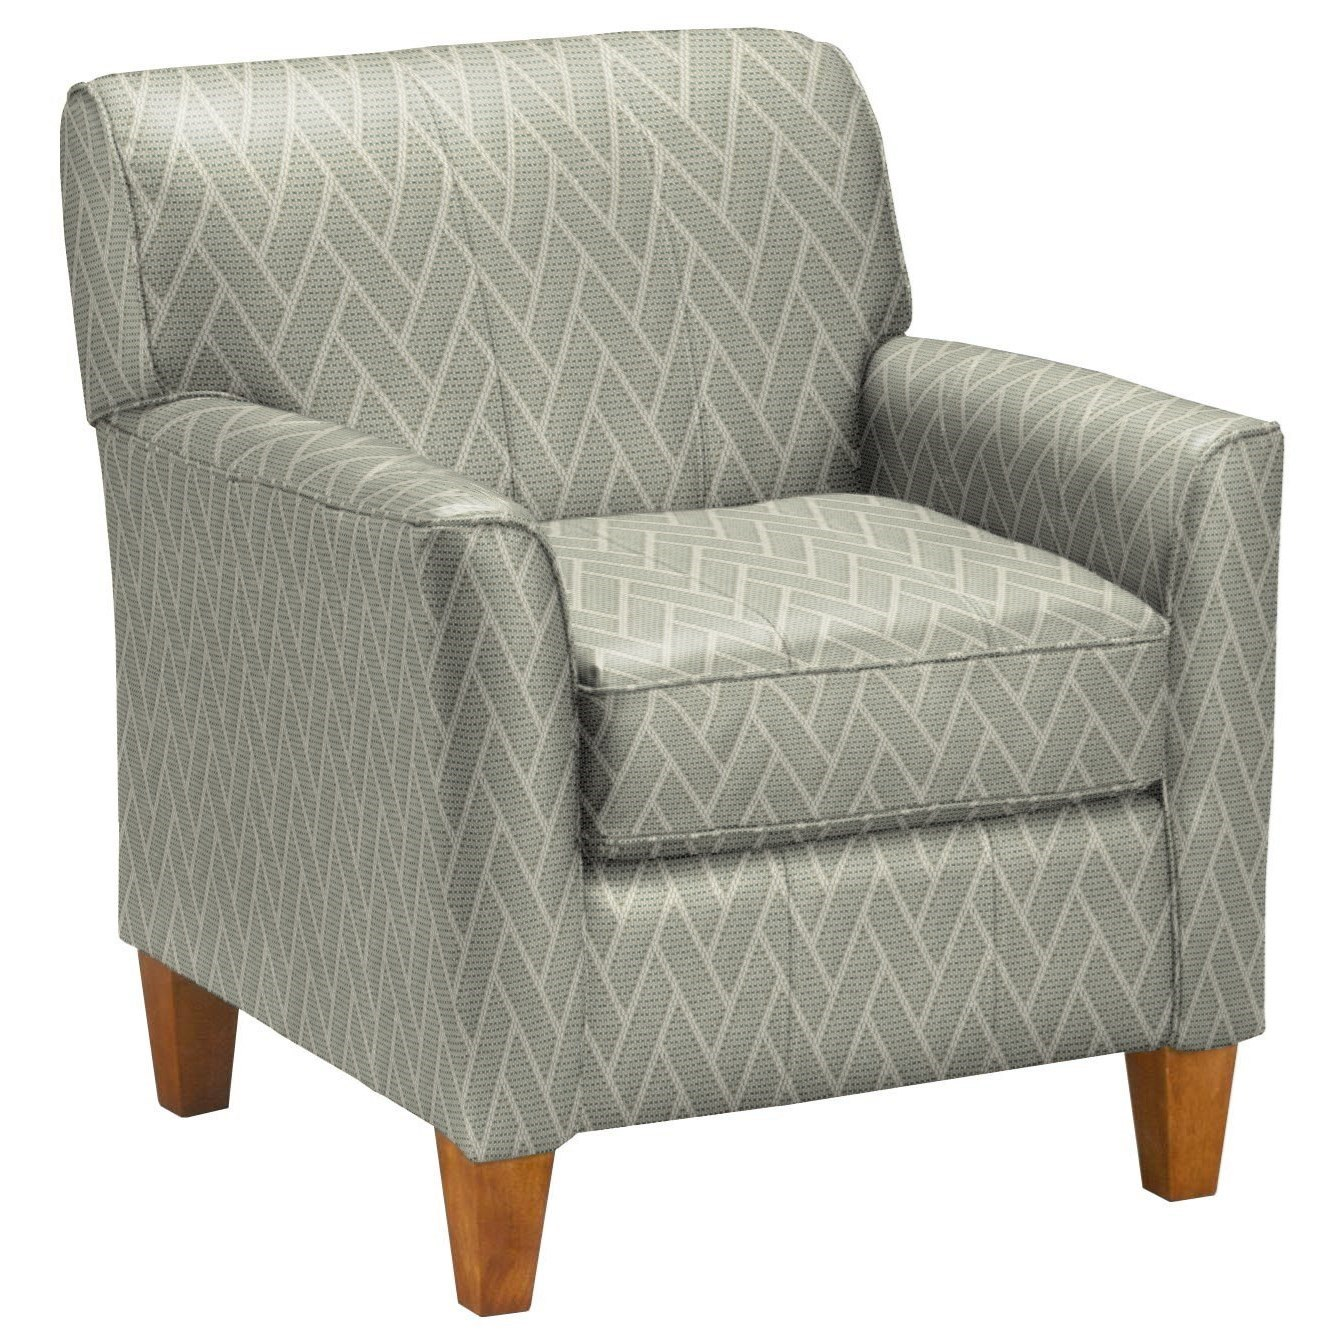 Best Home Furnishings Chairs - Club Risa Club Chair - Item Number: -1159276652-35257